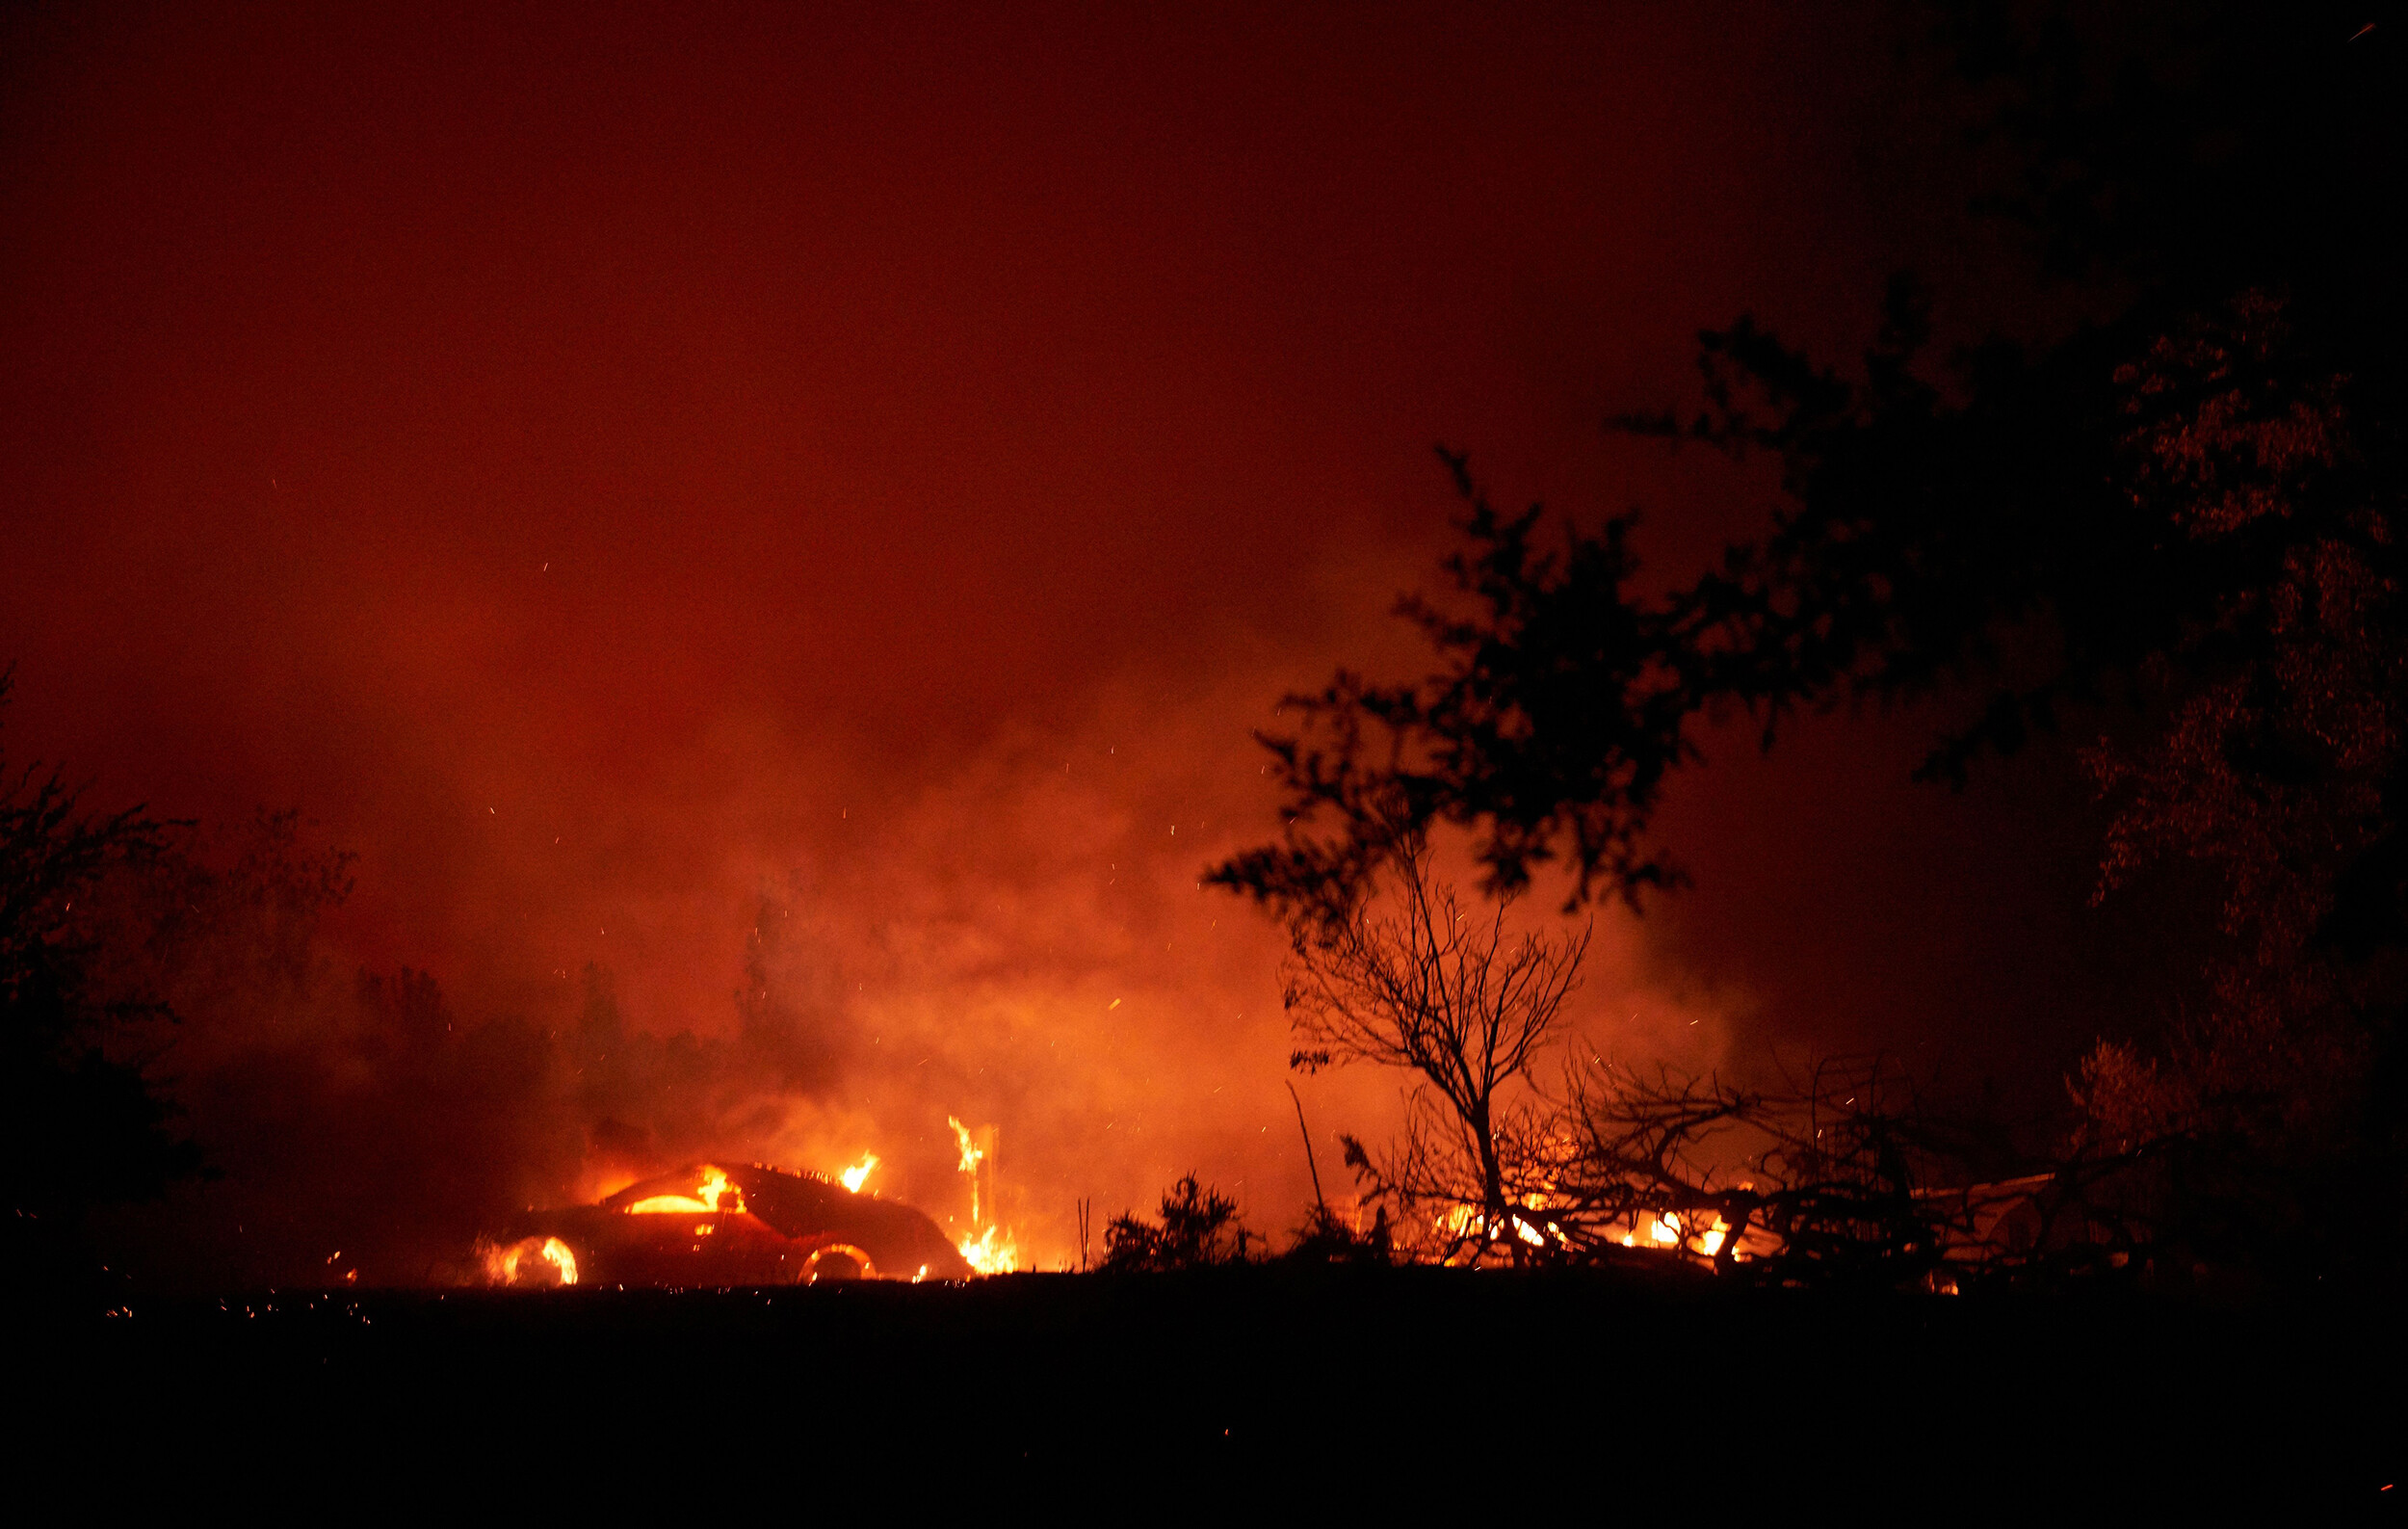 PG&E charged with manslaughter over 2020 Zogg Fire, which killed 4 people